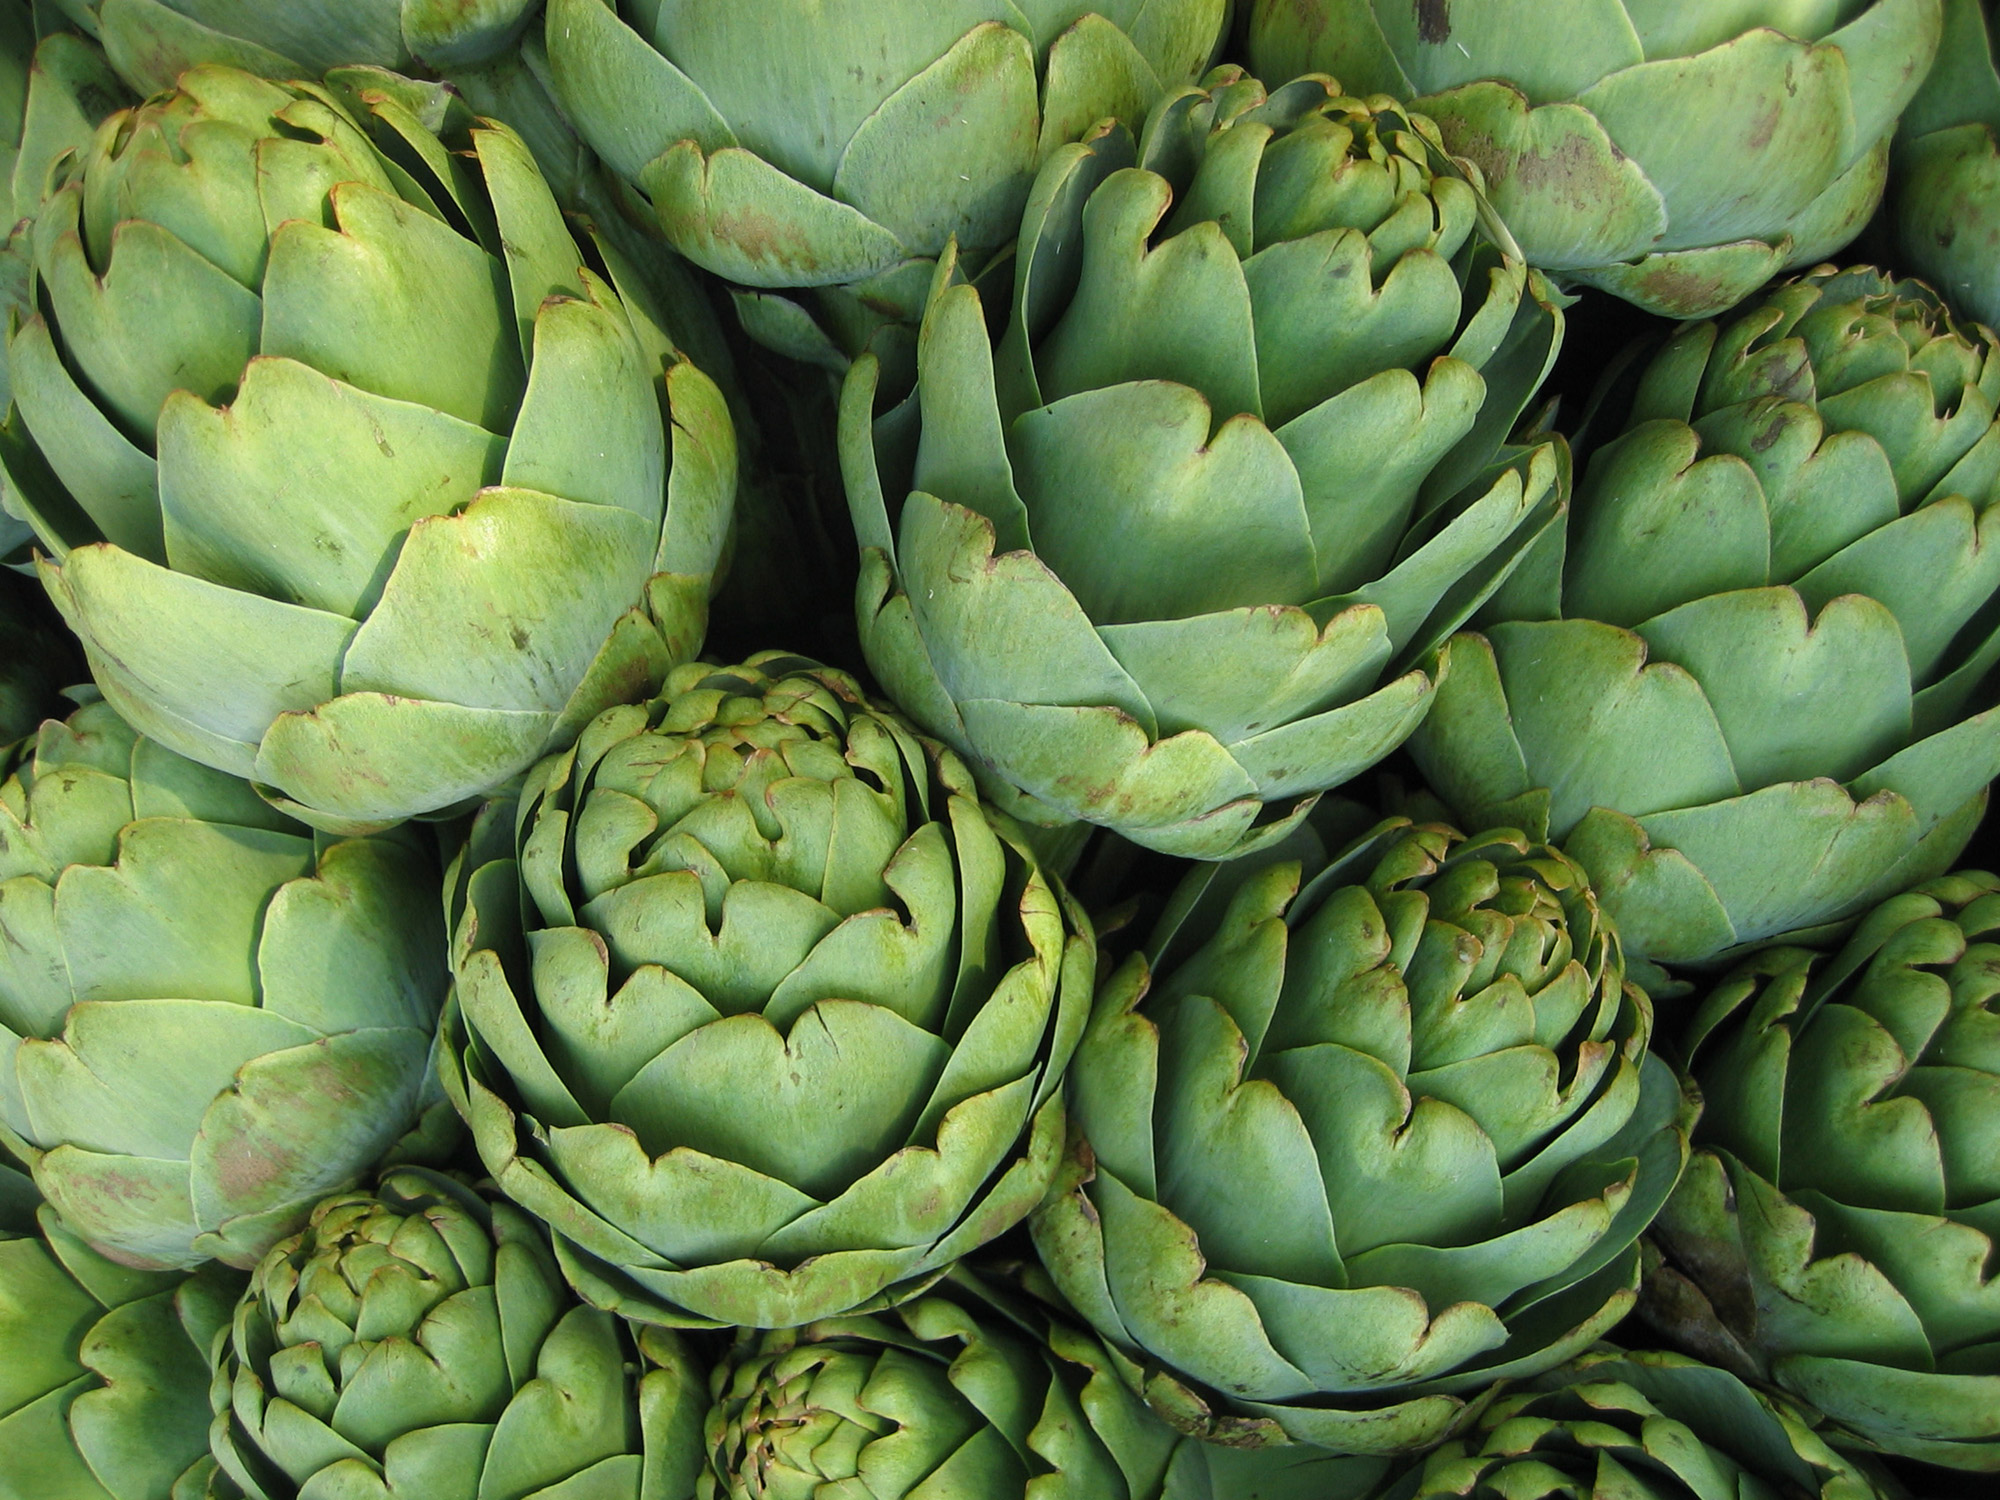 California Artichoke Advisory Board » How To Eat An Artichoke